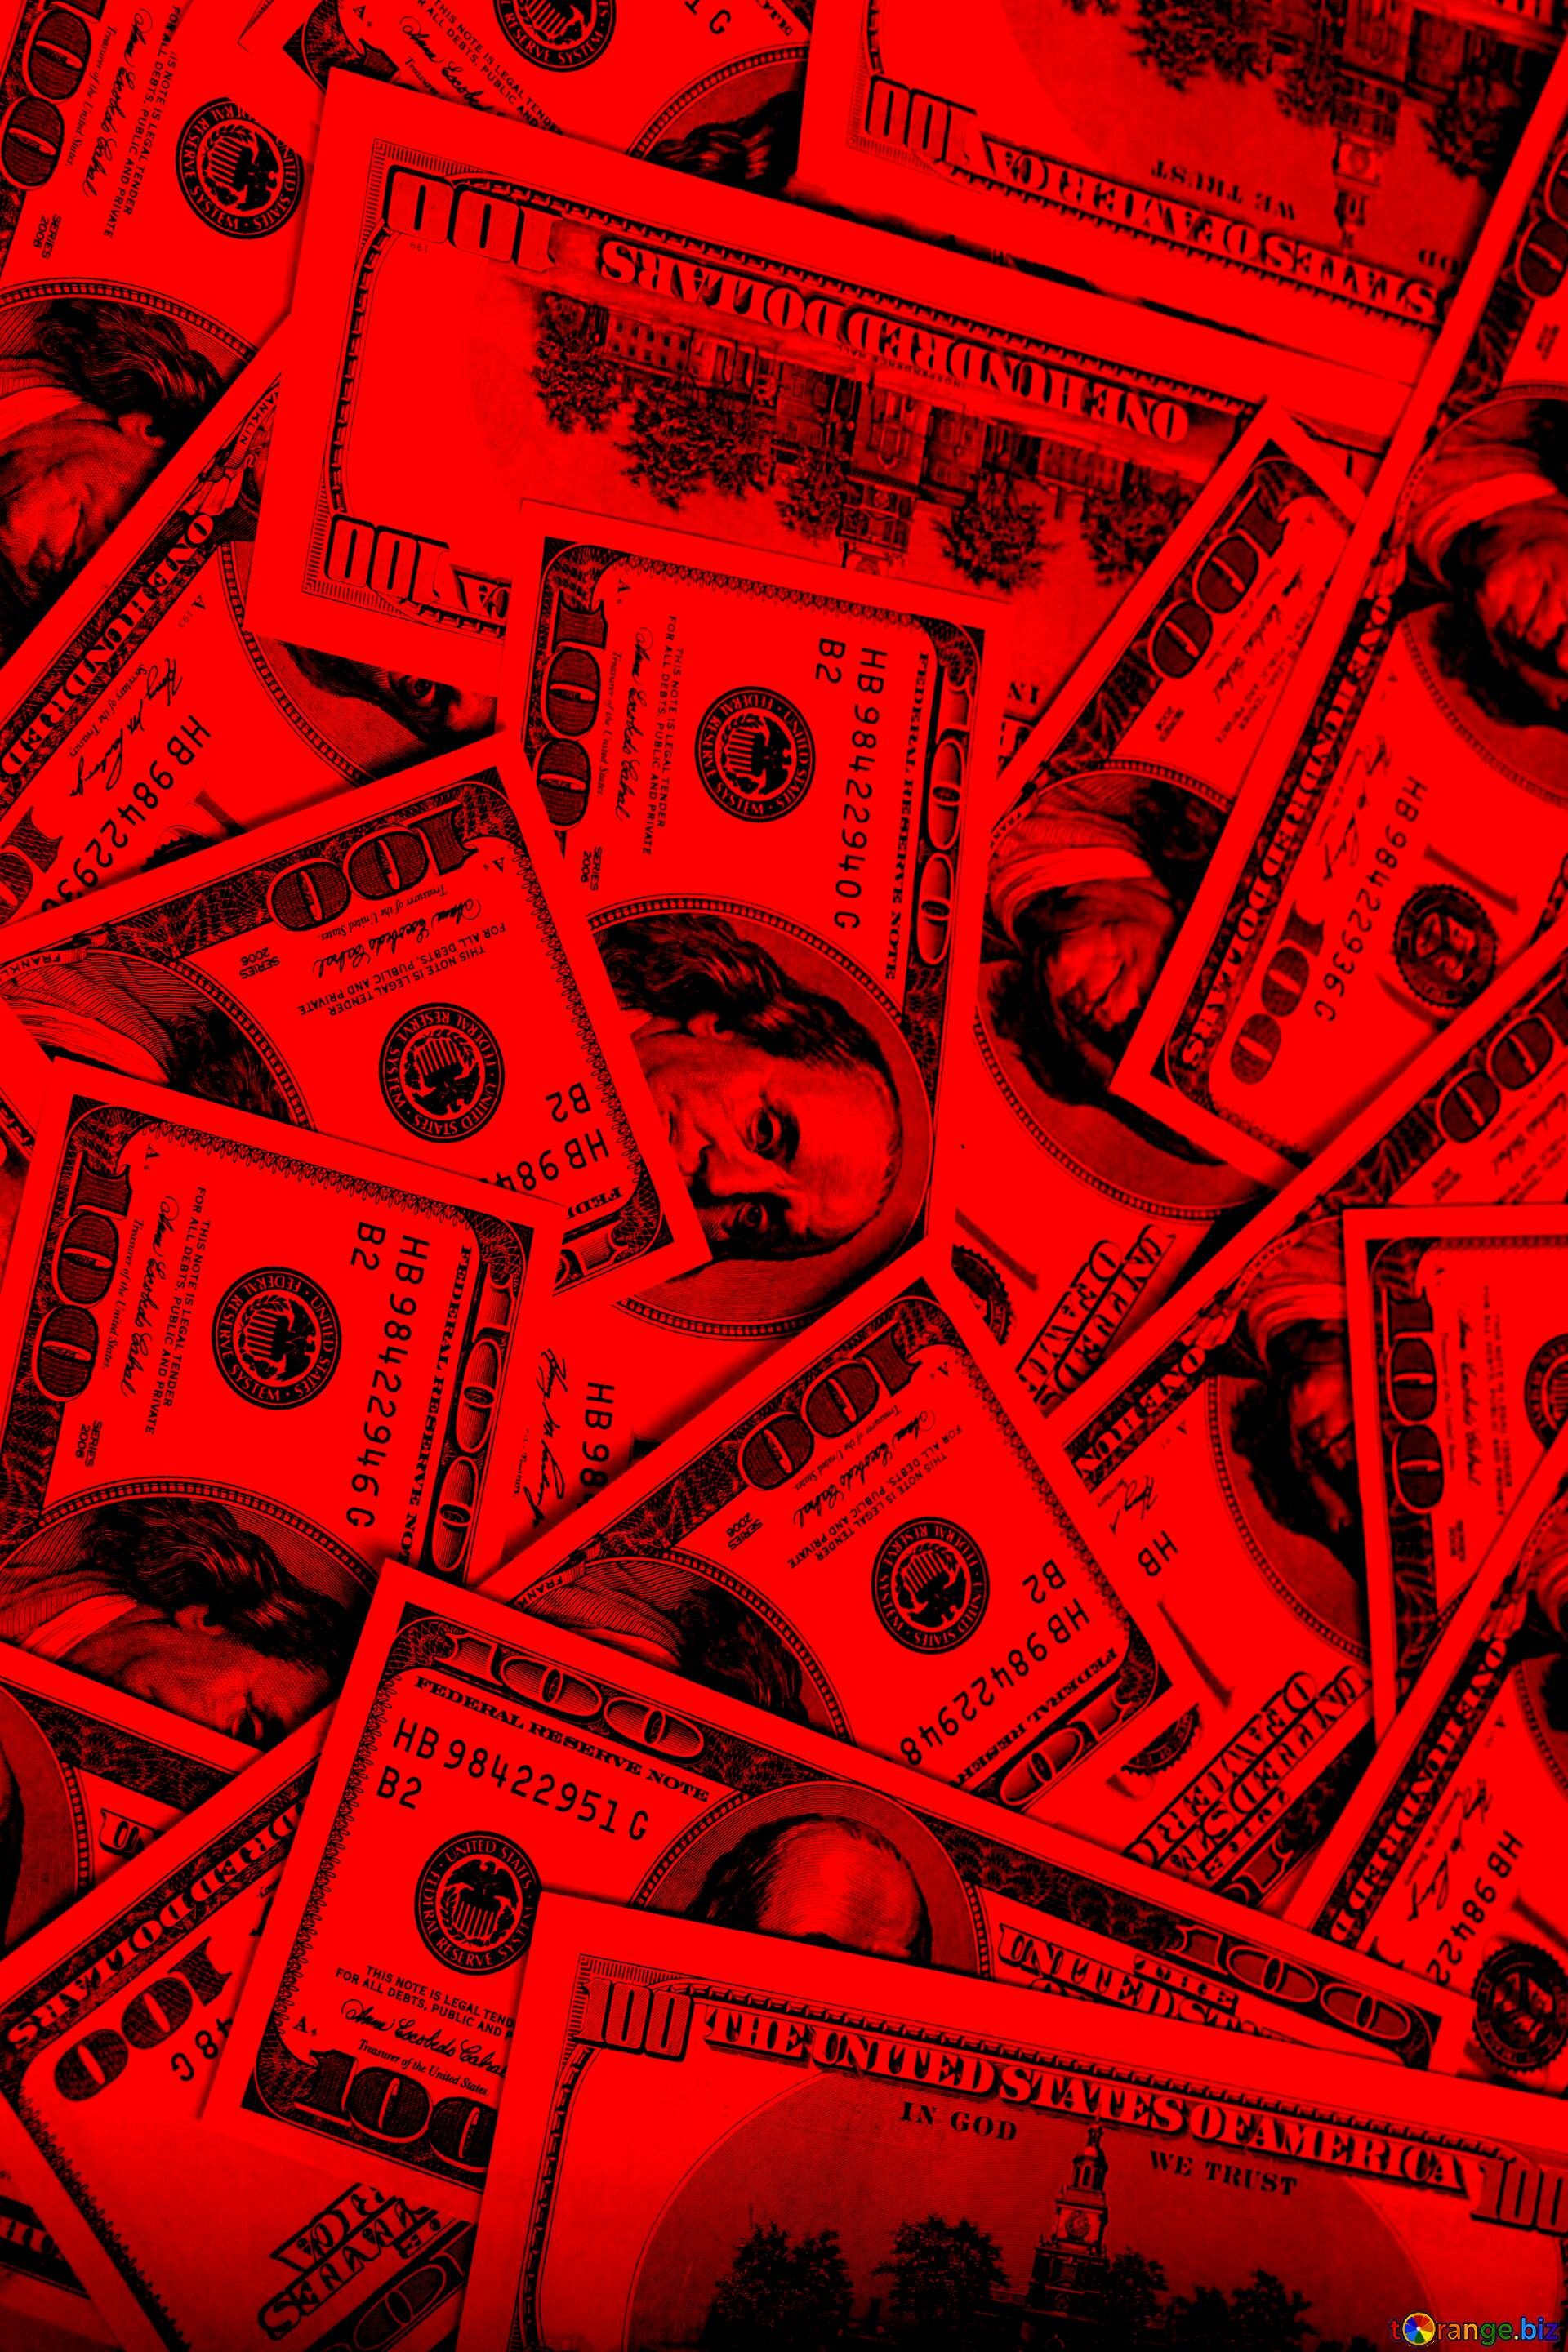 Download Free Picture Dollars Red Background On Cc By License Free Image Stock Torange Biz Fx 208400